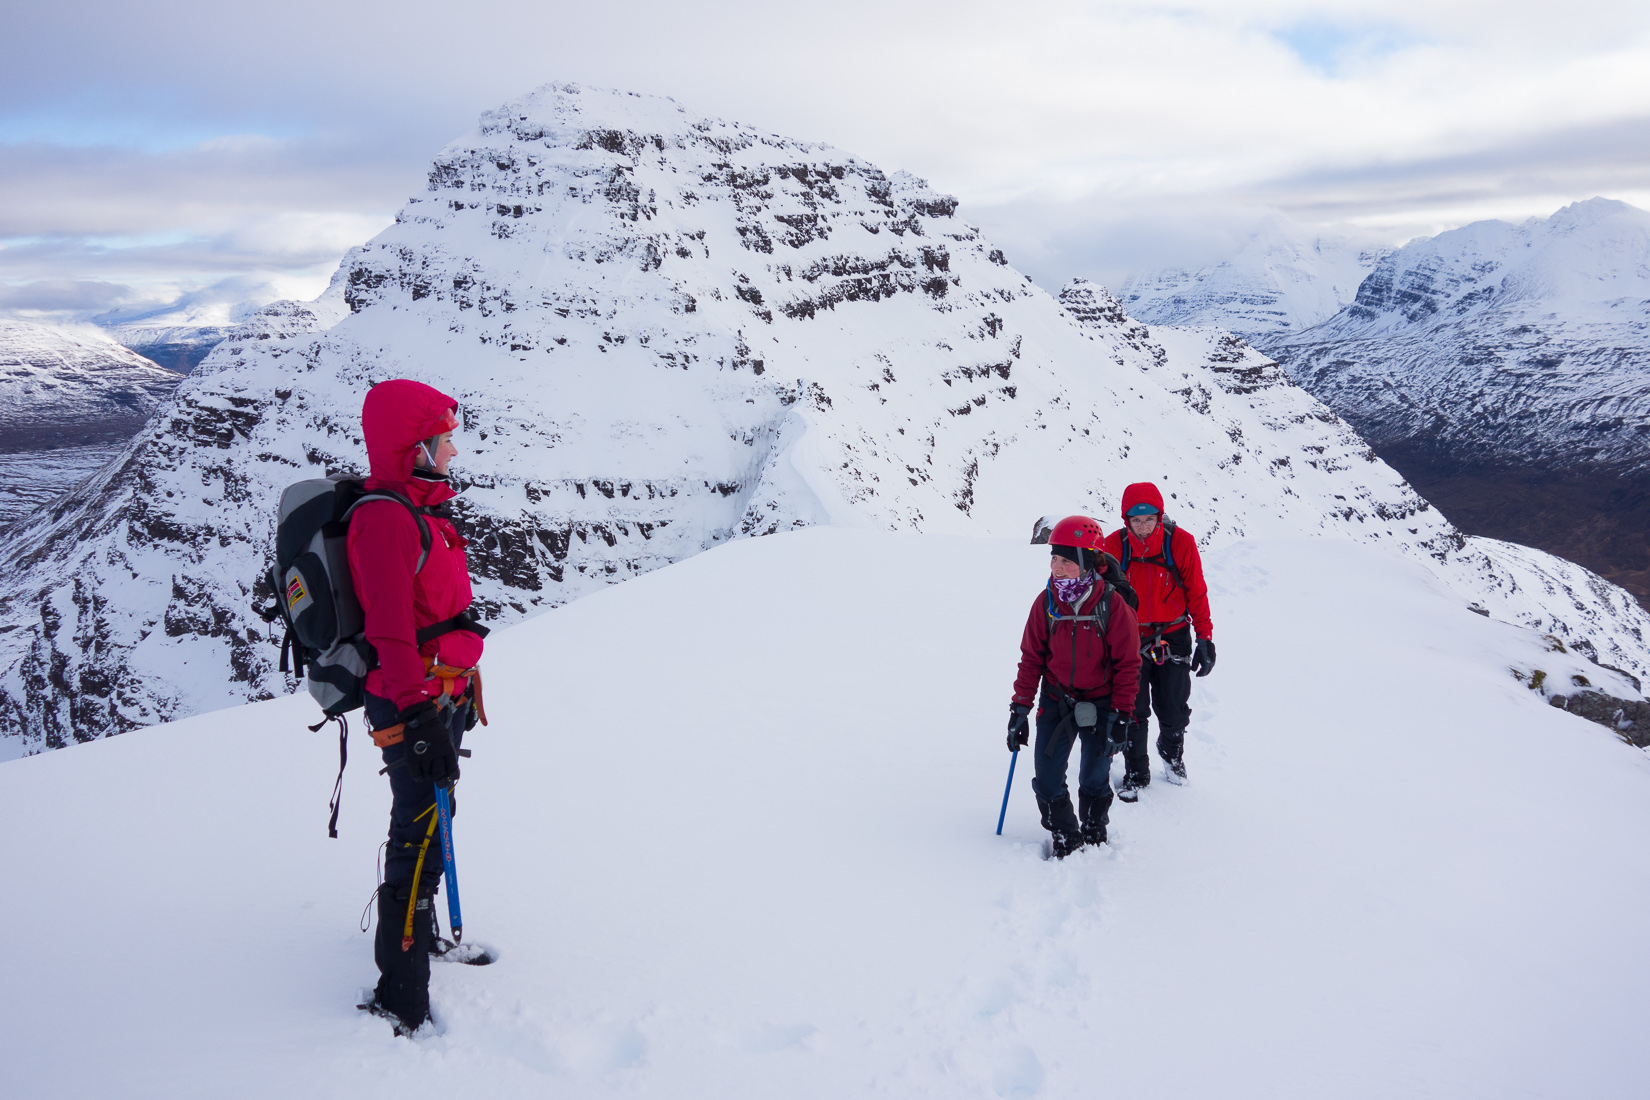 On the ascent to Sgurr Mhor